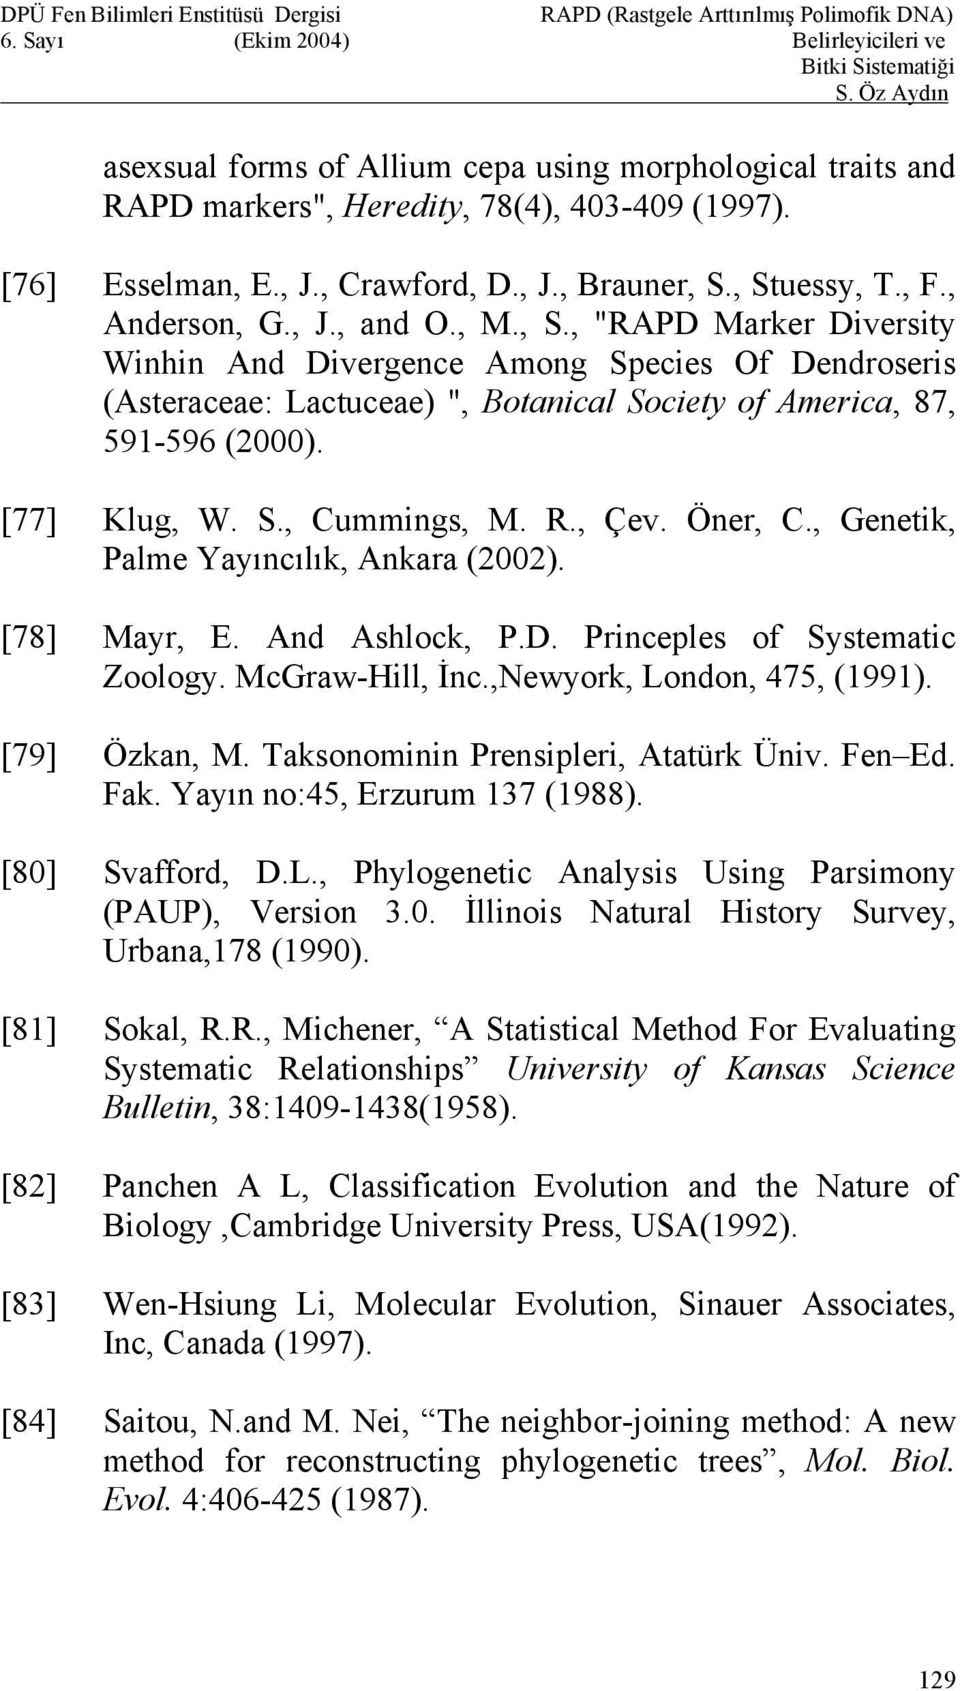 Öner, C., Genetik, Palme Yayıncılık, Ankara (2002). [78] Mayr, E. And Ashlock, P.D. Princeples of Systematic Zoology. McGraw-Hill, İnc.,Newyork, London, 475, (1991). [79] Özkan, M.